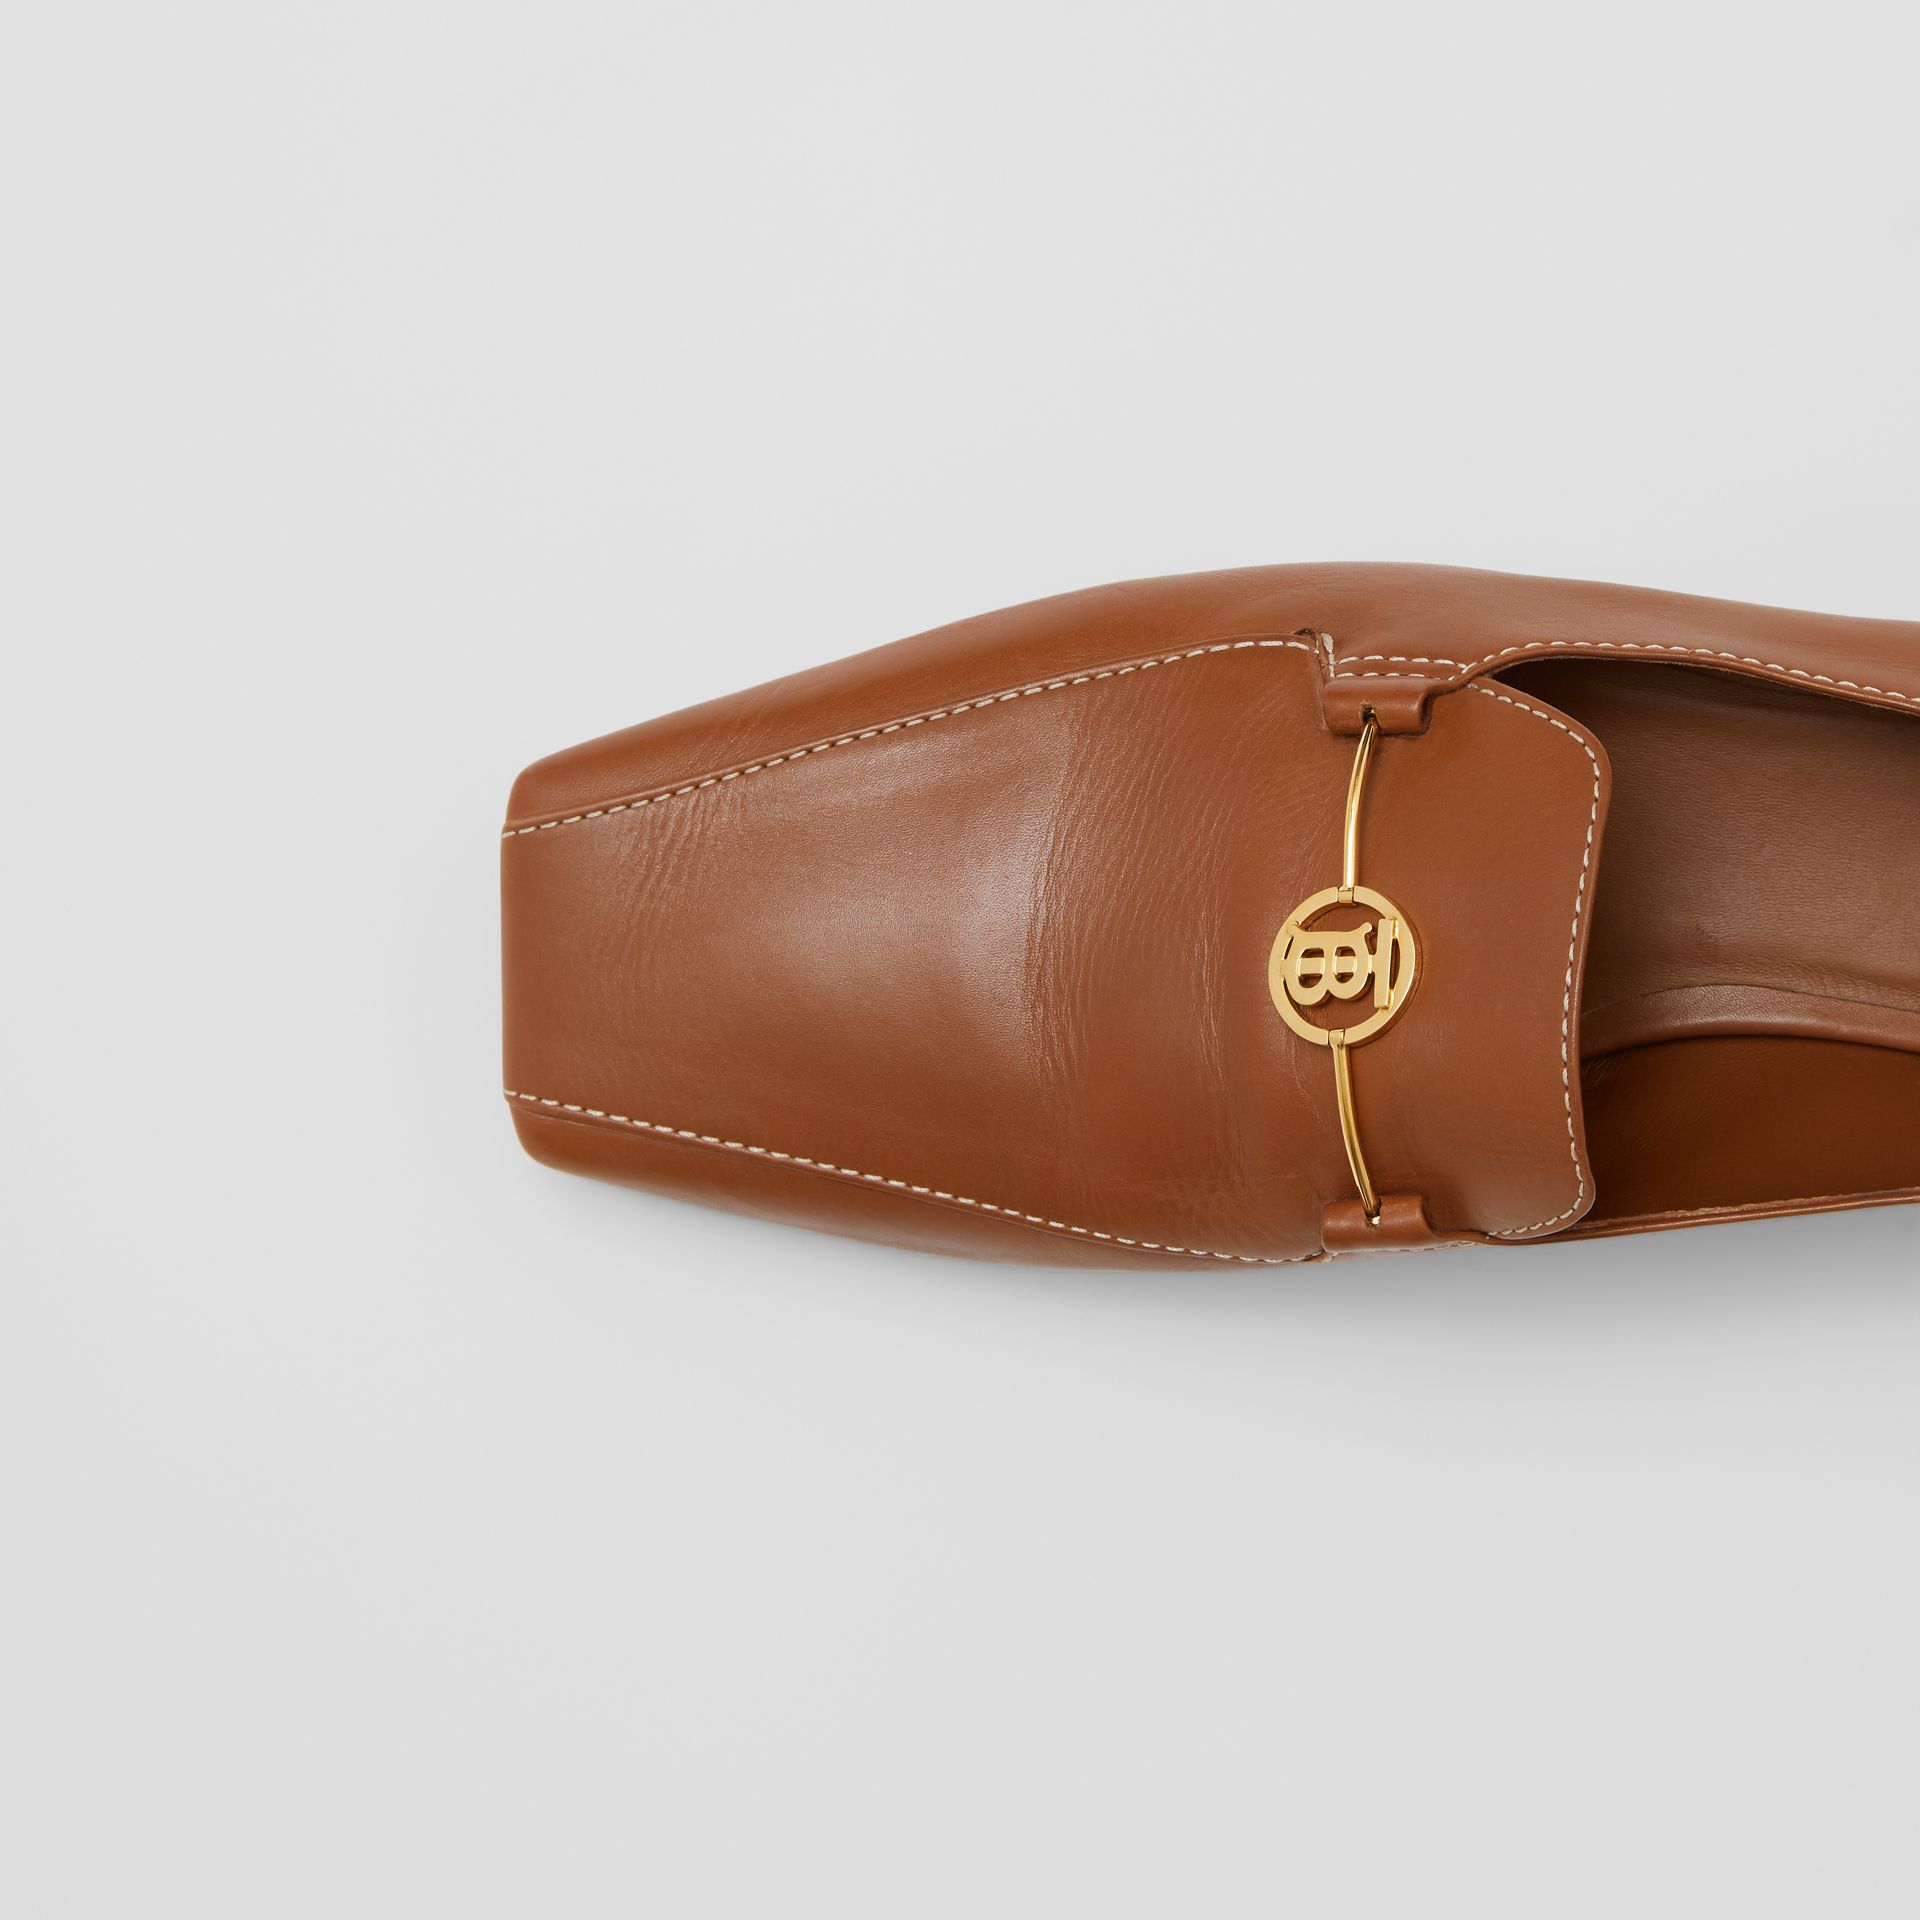 Monogram Motif Leather Loafers in Tan - Women | Burberry Australia - gallery image 1